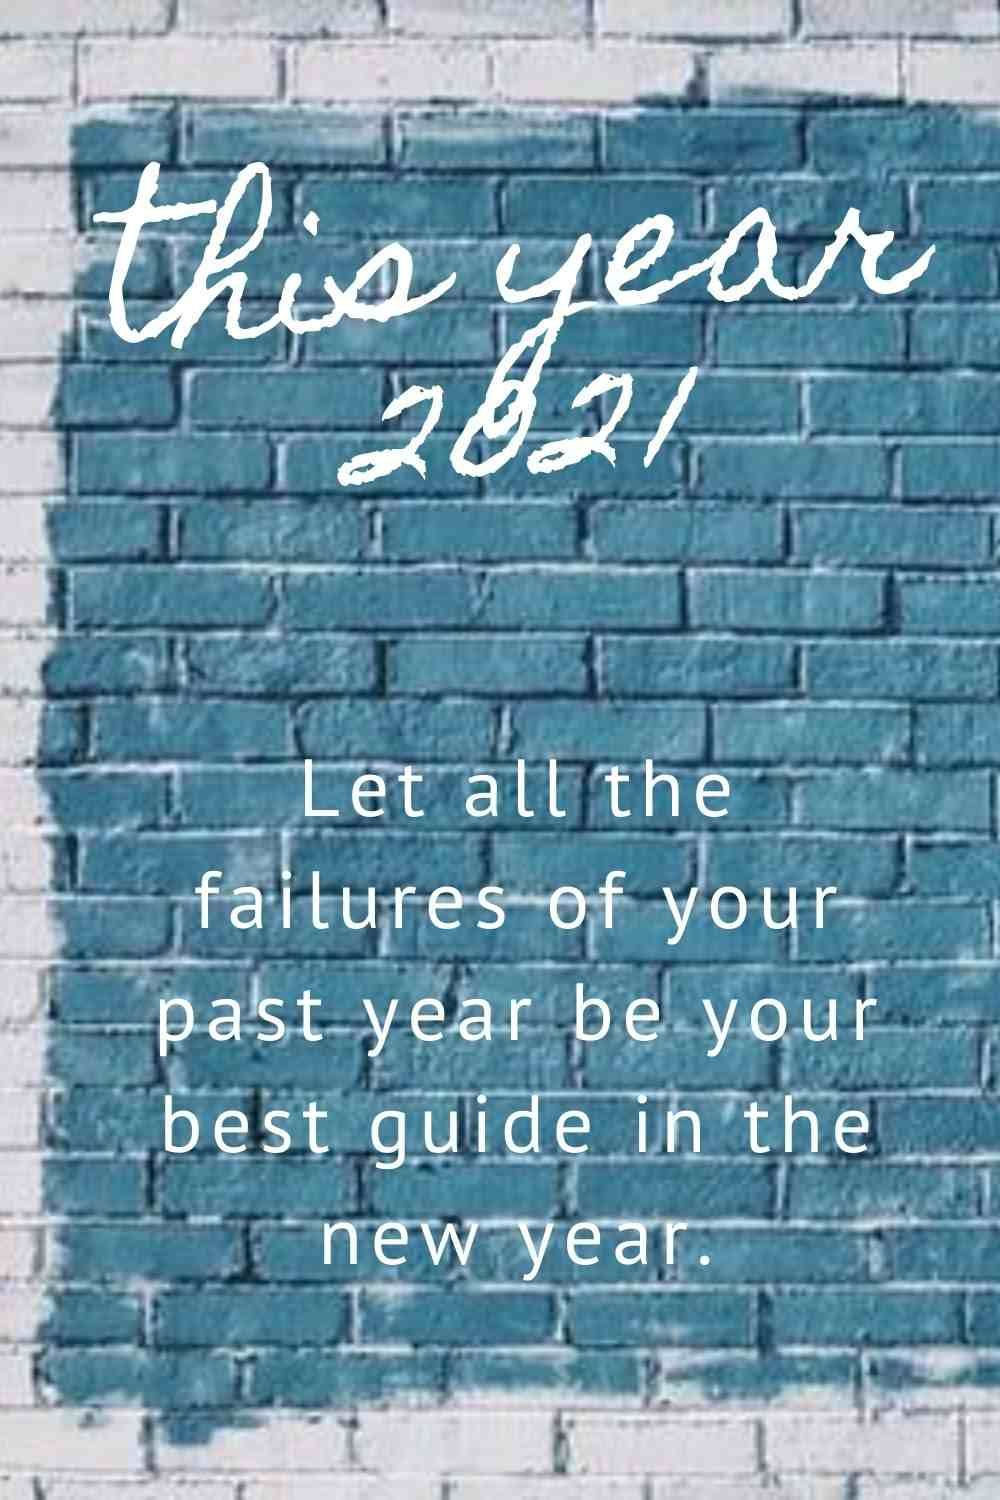 Happy new year 2021 wallpapers HD for iPhone & Android in